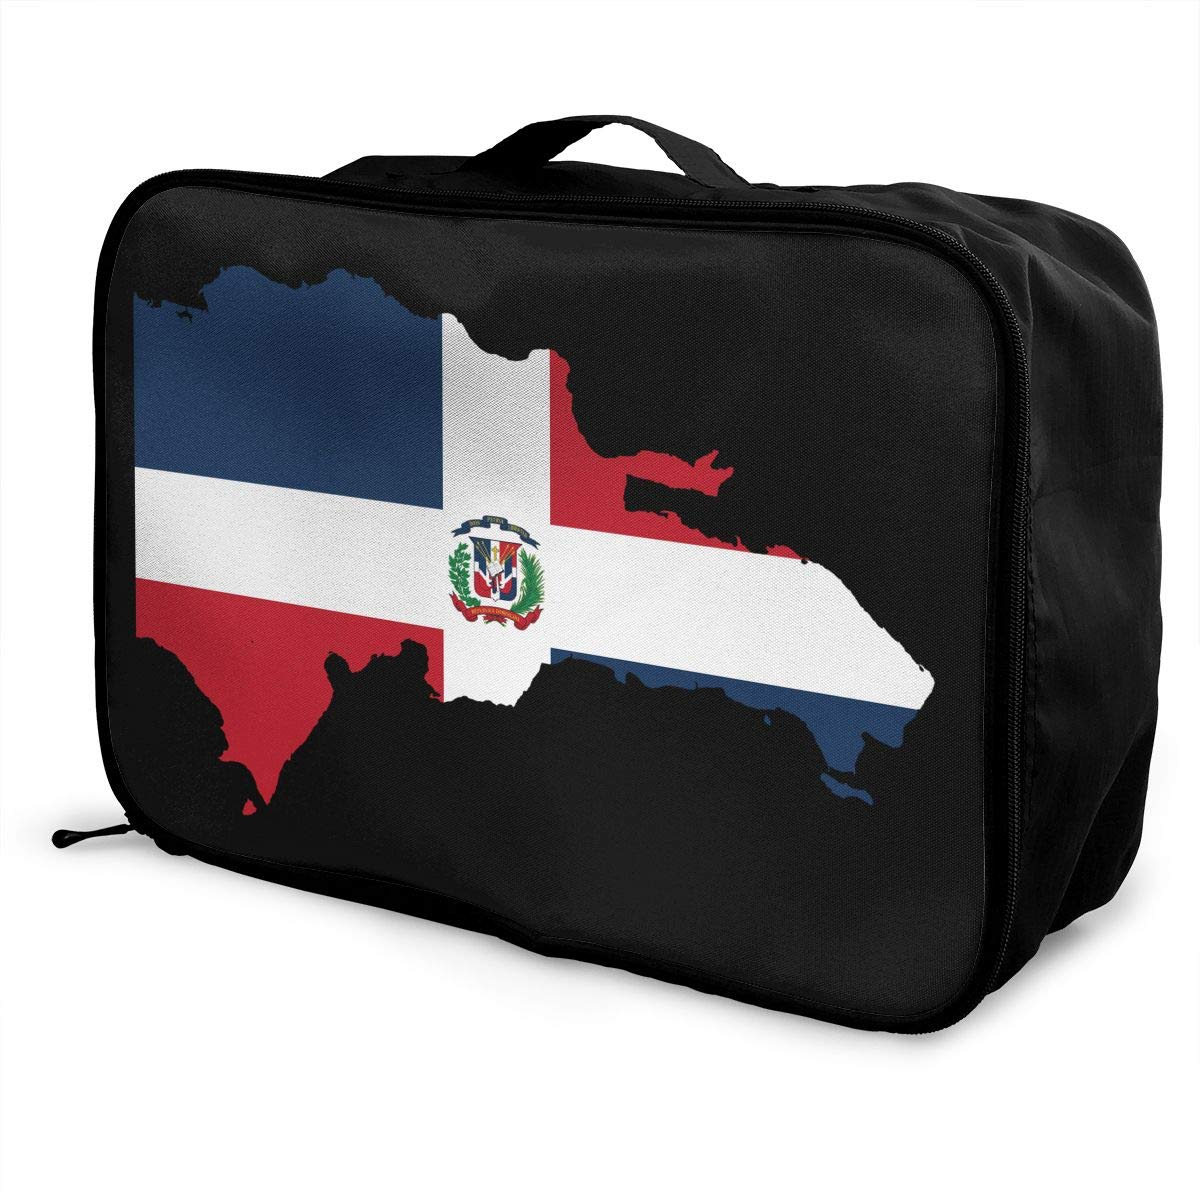 YueLJB Dominican Republic Flag Outline Lightweight Large Capacity Portable Luggage Bag Travel Duffel Bag Storage Carry Luggage Duffle Tote Bag